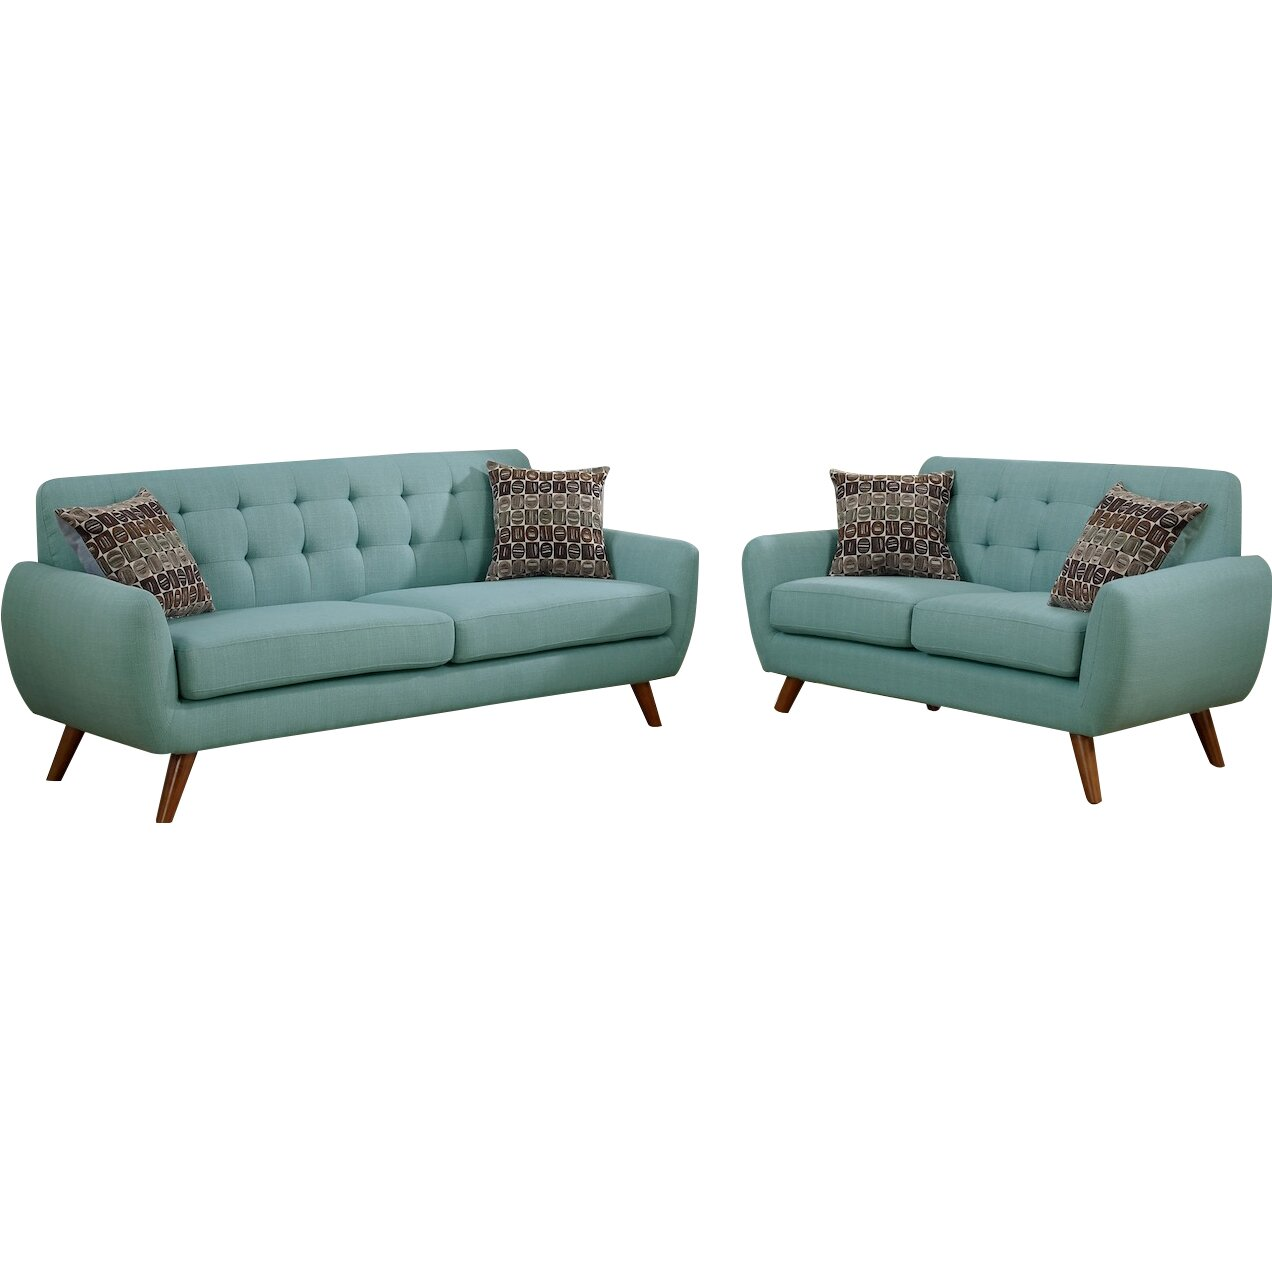 Infini furnishings modern retro sofa and loveseat for Couch and loveseat